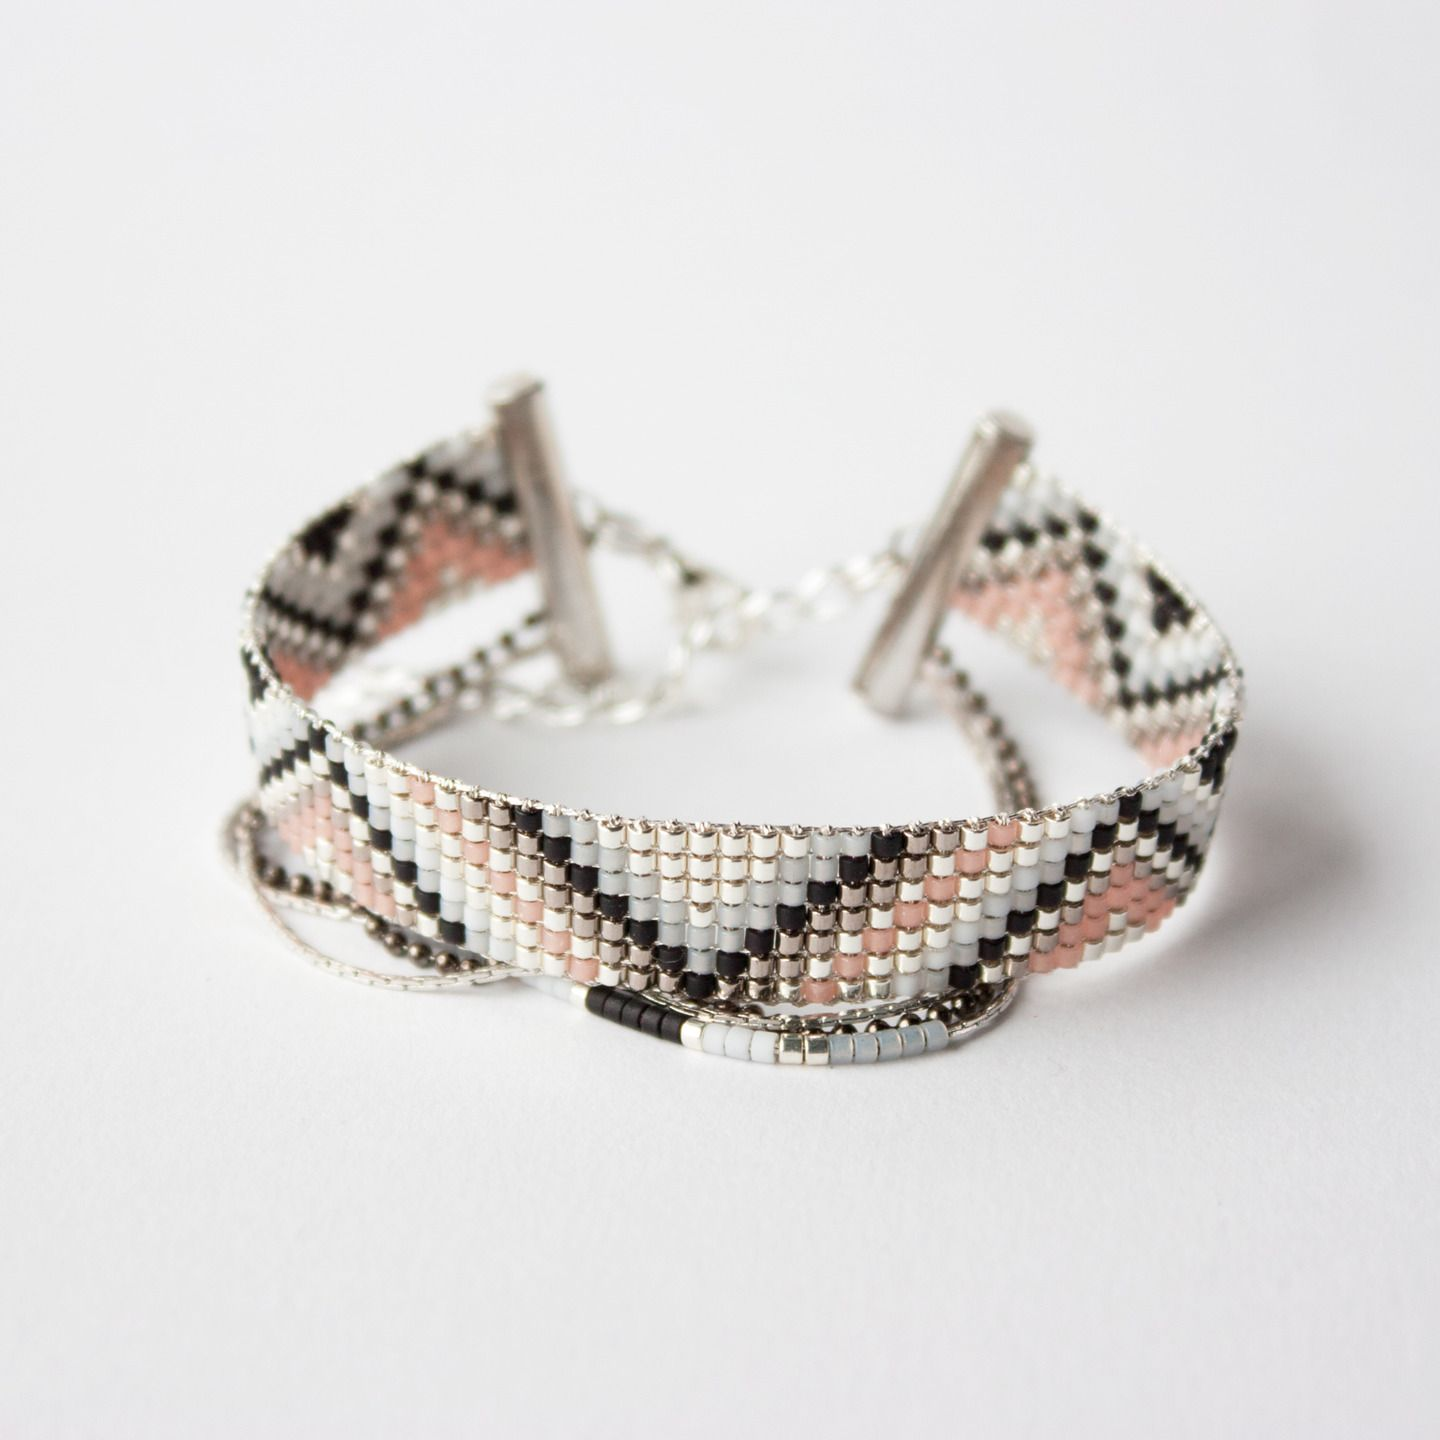 bracelet tiss perles miyuki argent gris et noir bead loom pinterest bracelets. Black Bedroom Furniture Sets. Home Design Ideas